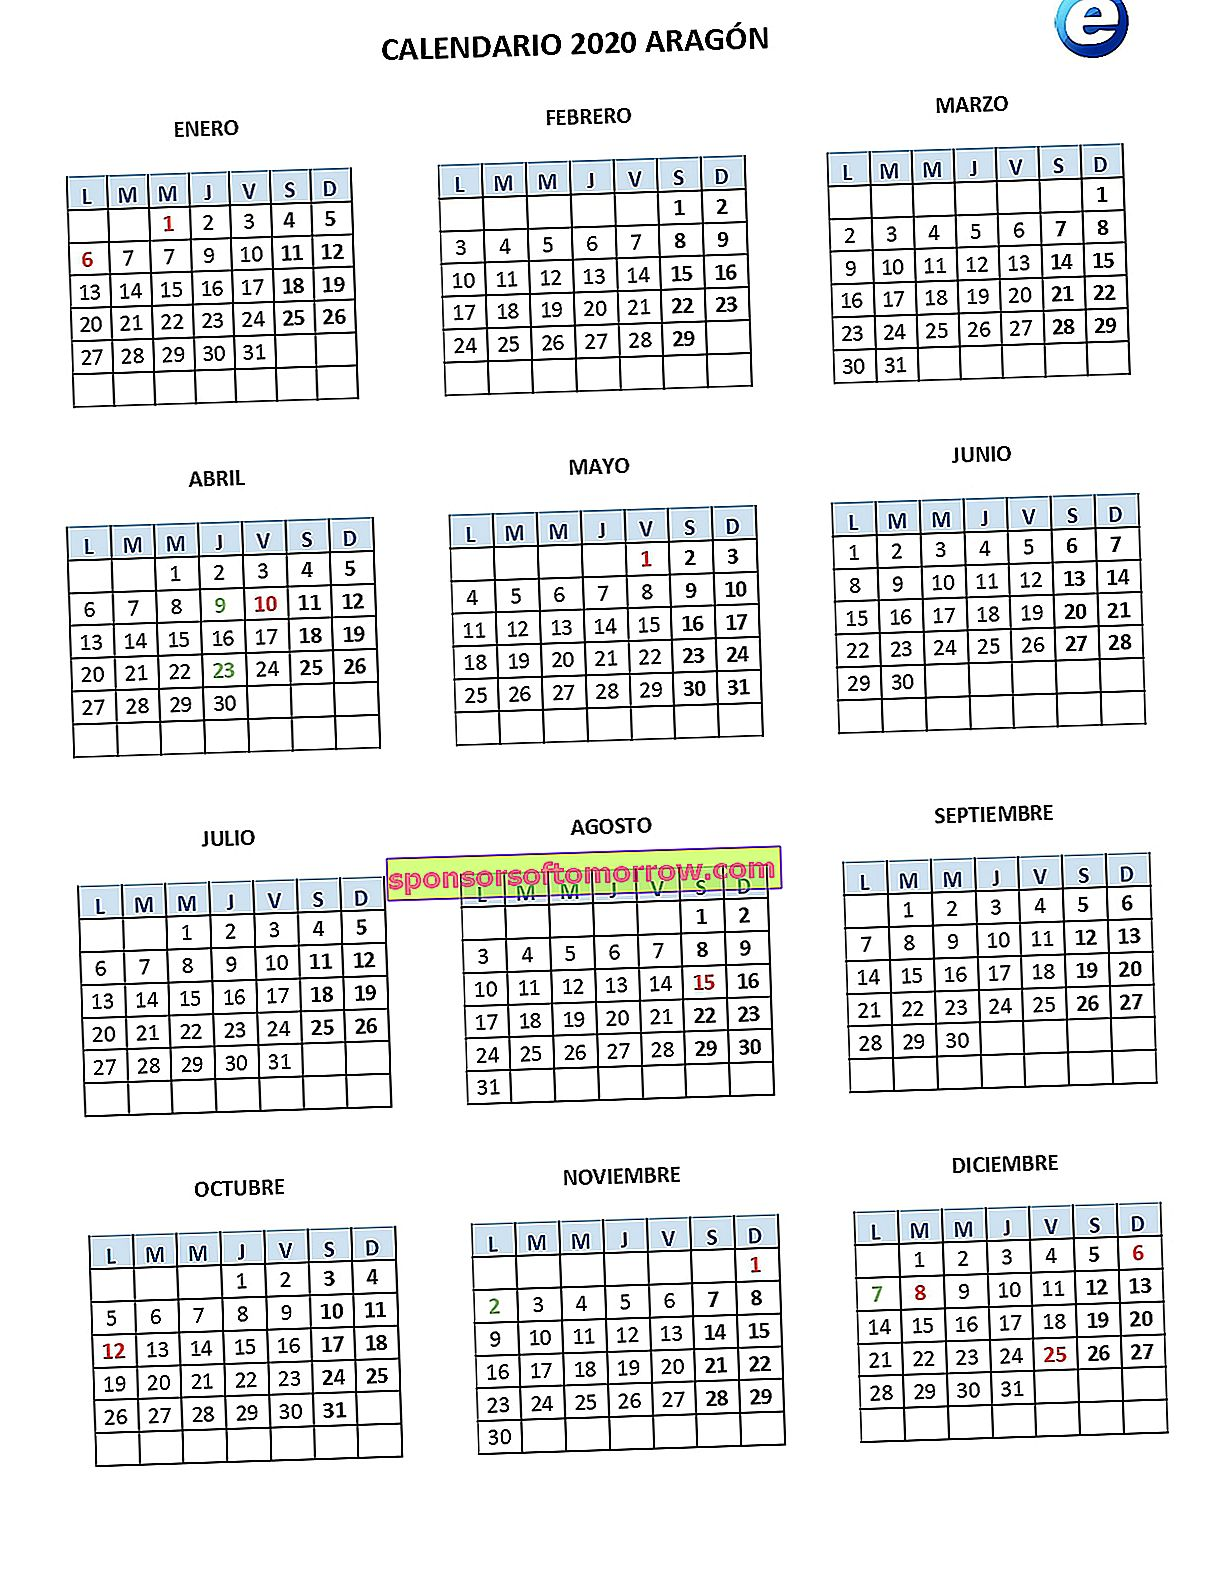 CALENDAR 2020 Aragón_pages-to-jpg-0001